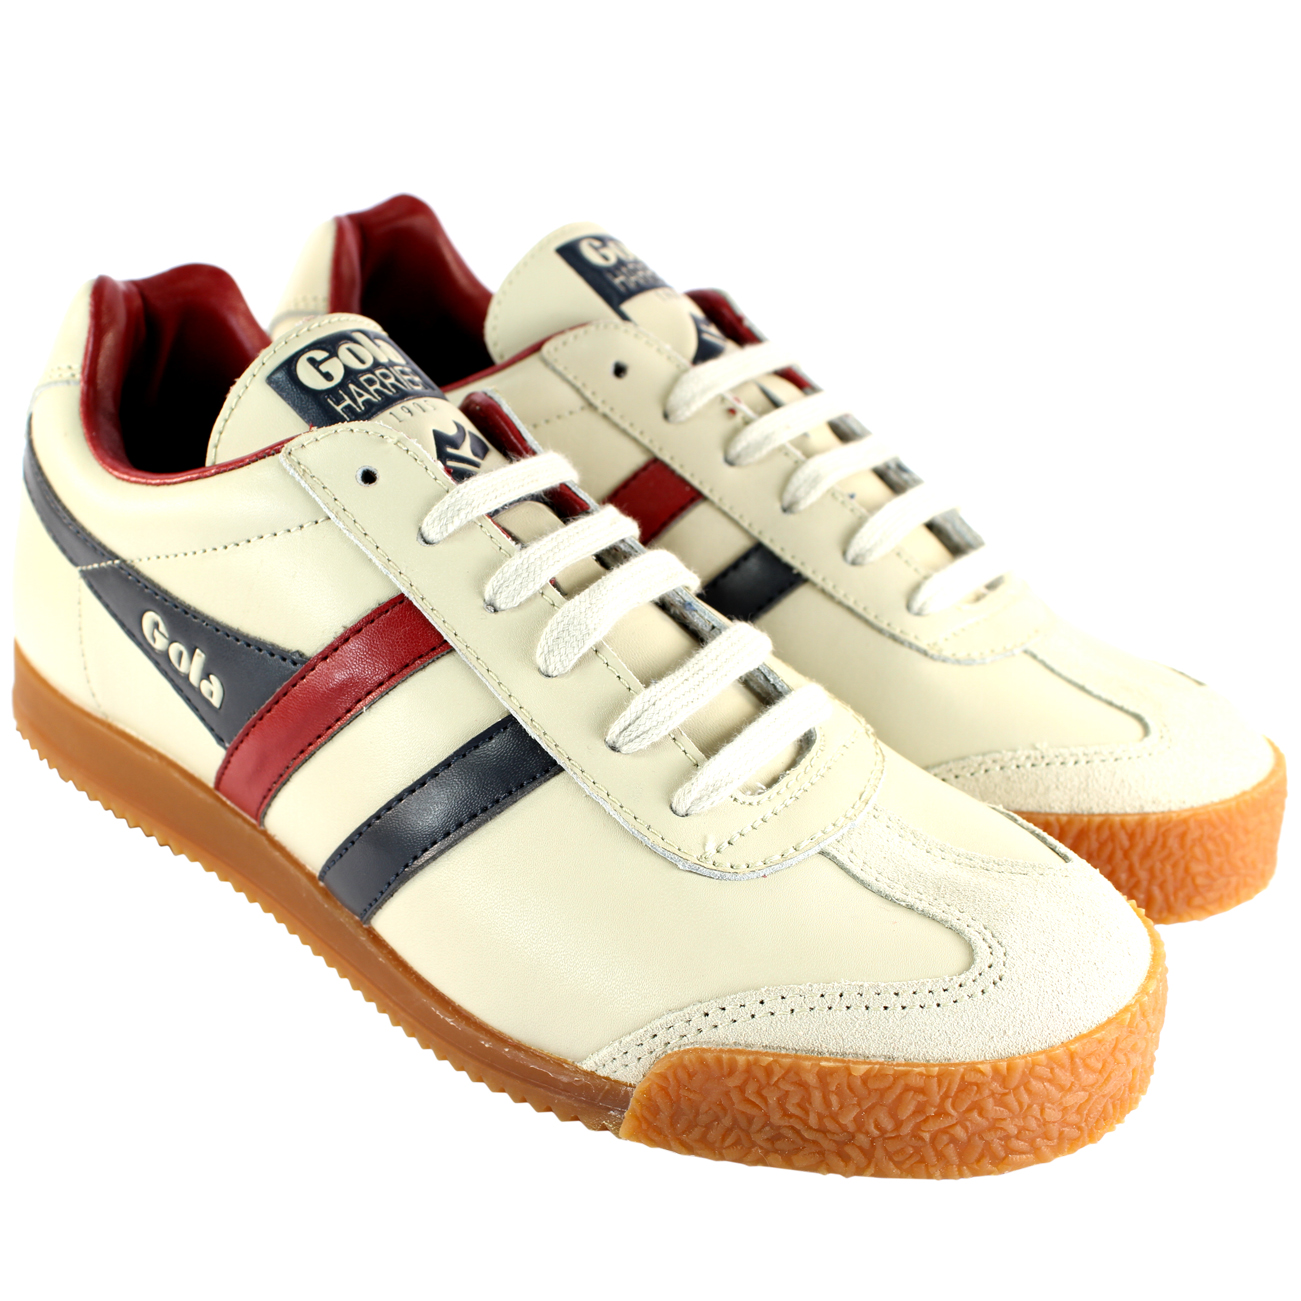 Gola Harrier Low Profile Trainers